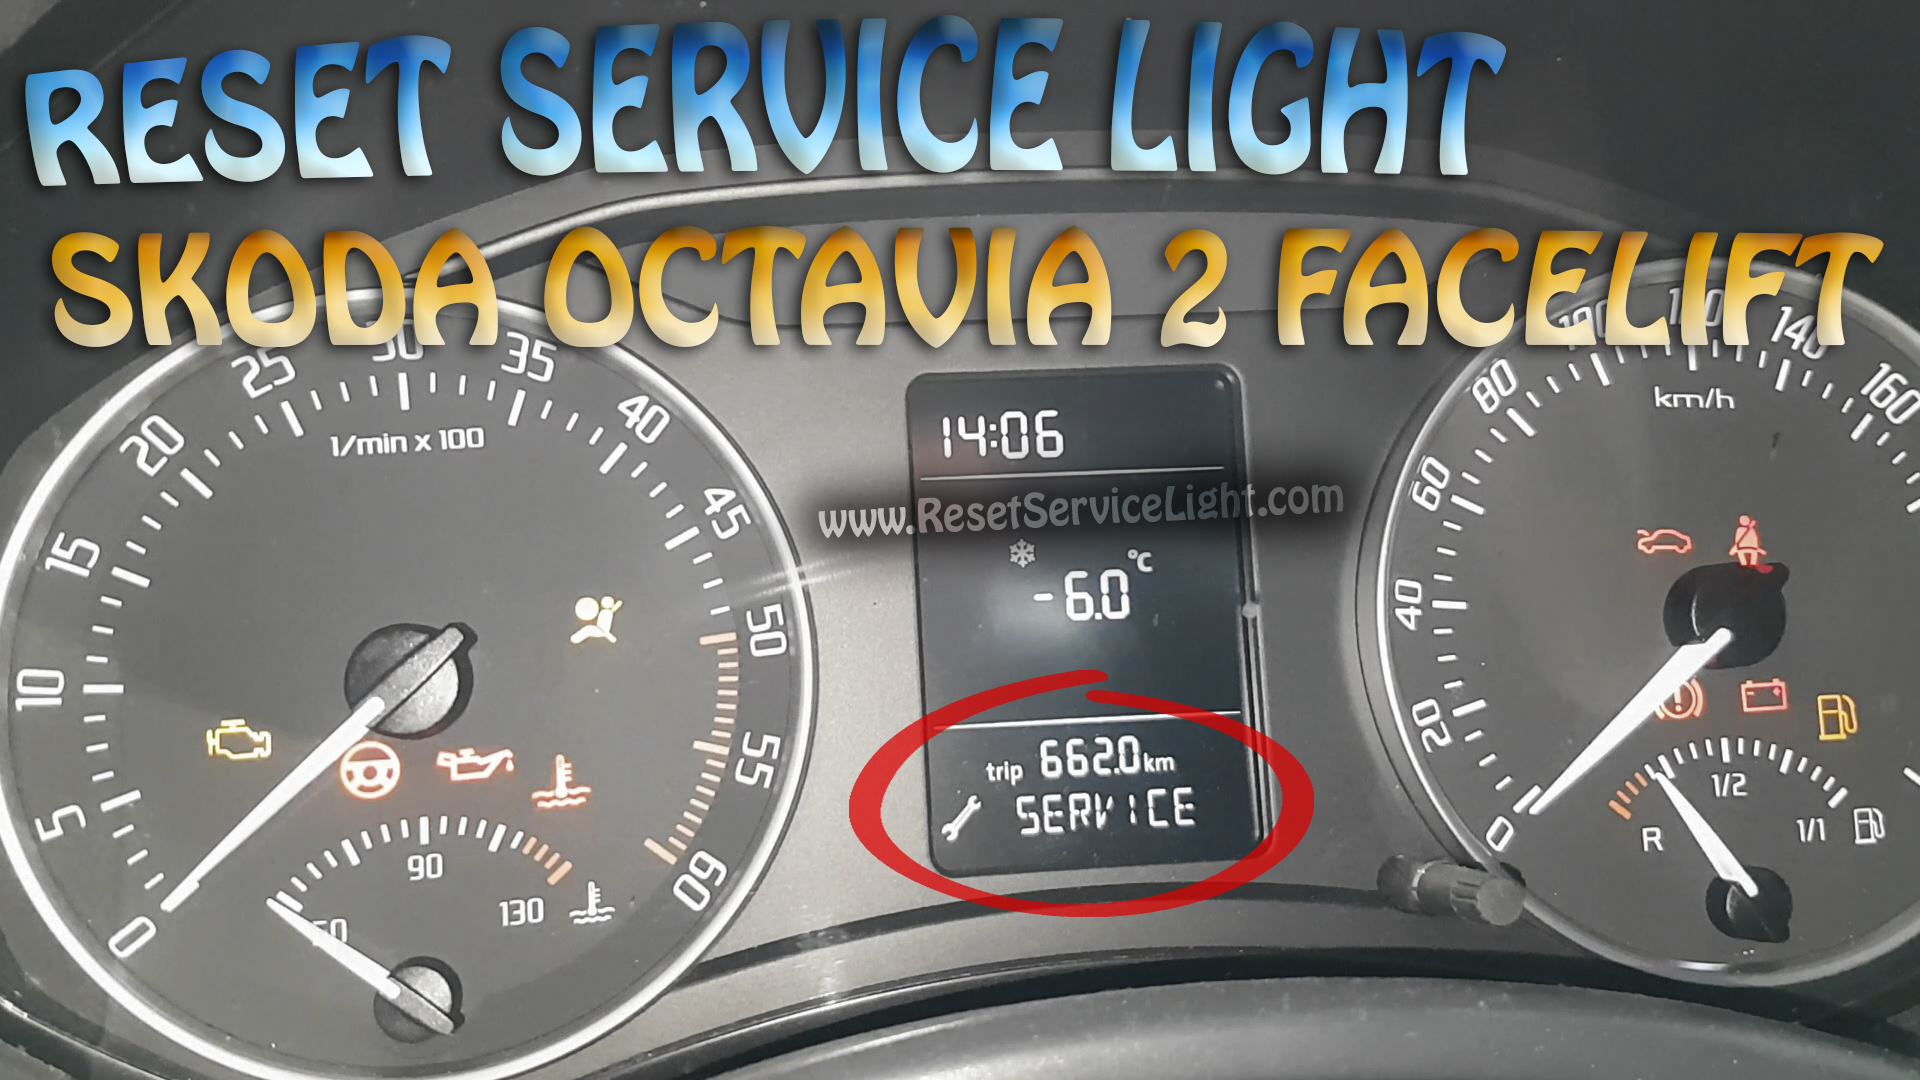 Reset service light indicator skoda fabia reset service light reset service light skoda octavia mk2 facelift 2009 2013 biocorpaavc Image collections